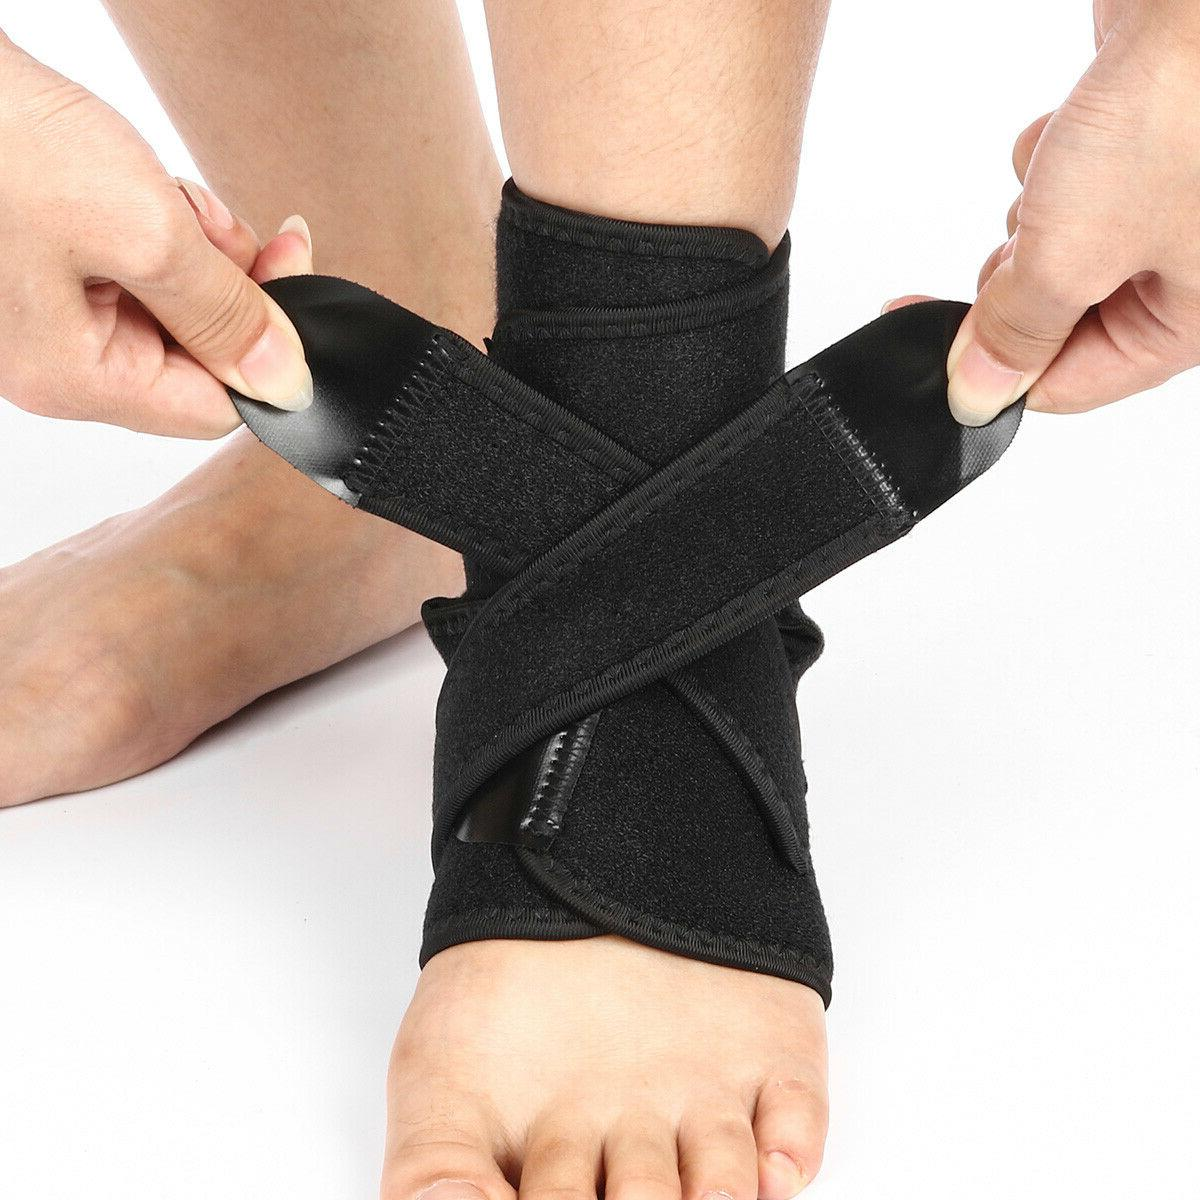 Ankle Support Brace Breathable Neoprene Sleeve Adjustable Wr